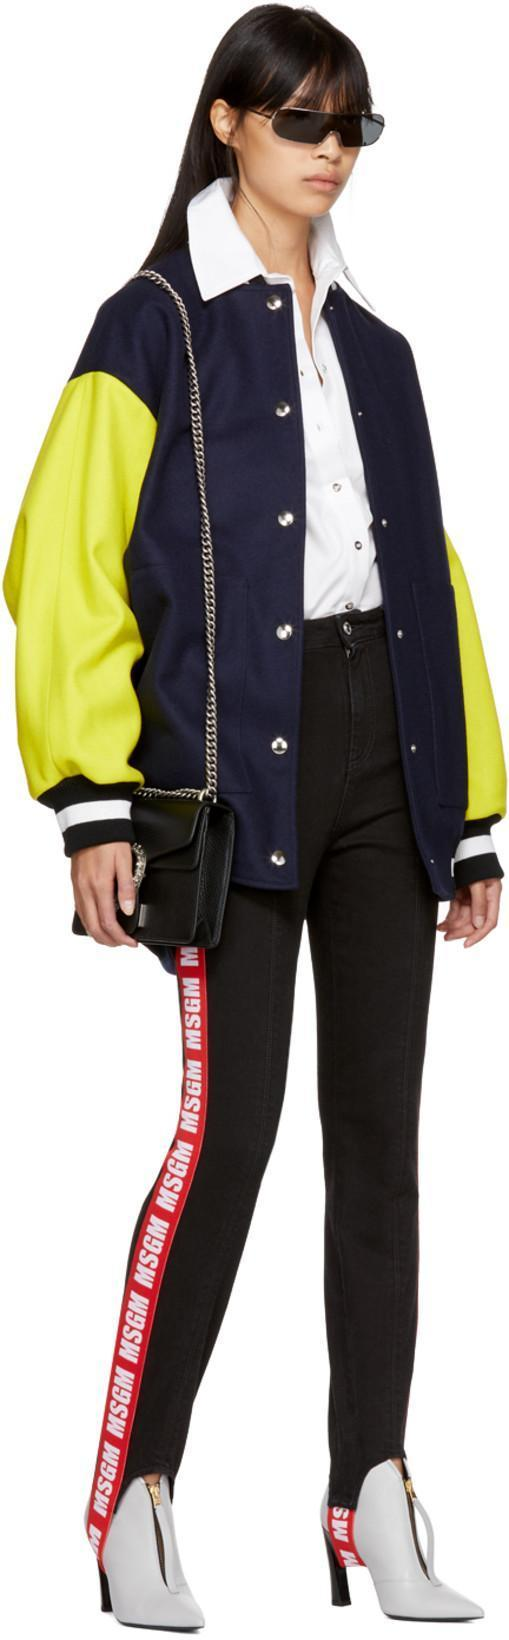 8a2b8d5c9c MSGM Woman Oversized Sequin-Embellished Wool-Blend Bomber Jacket Navy in  Blue